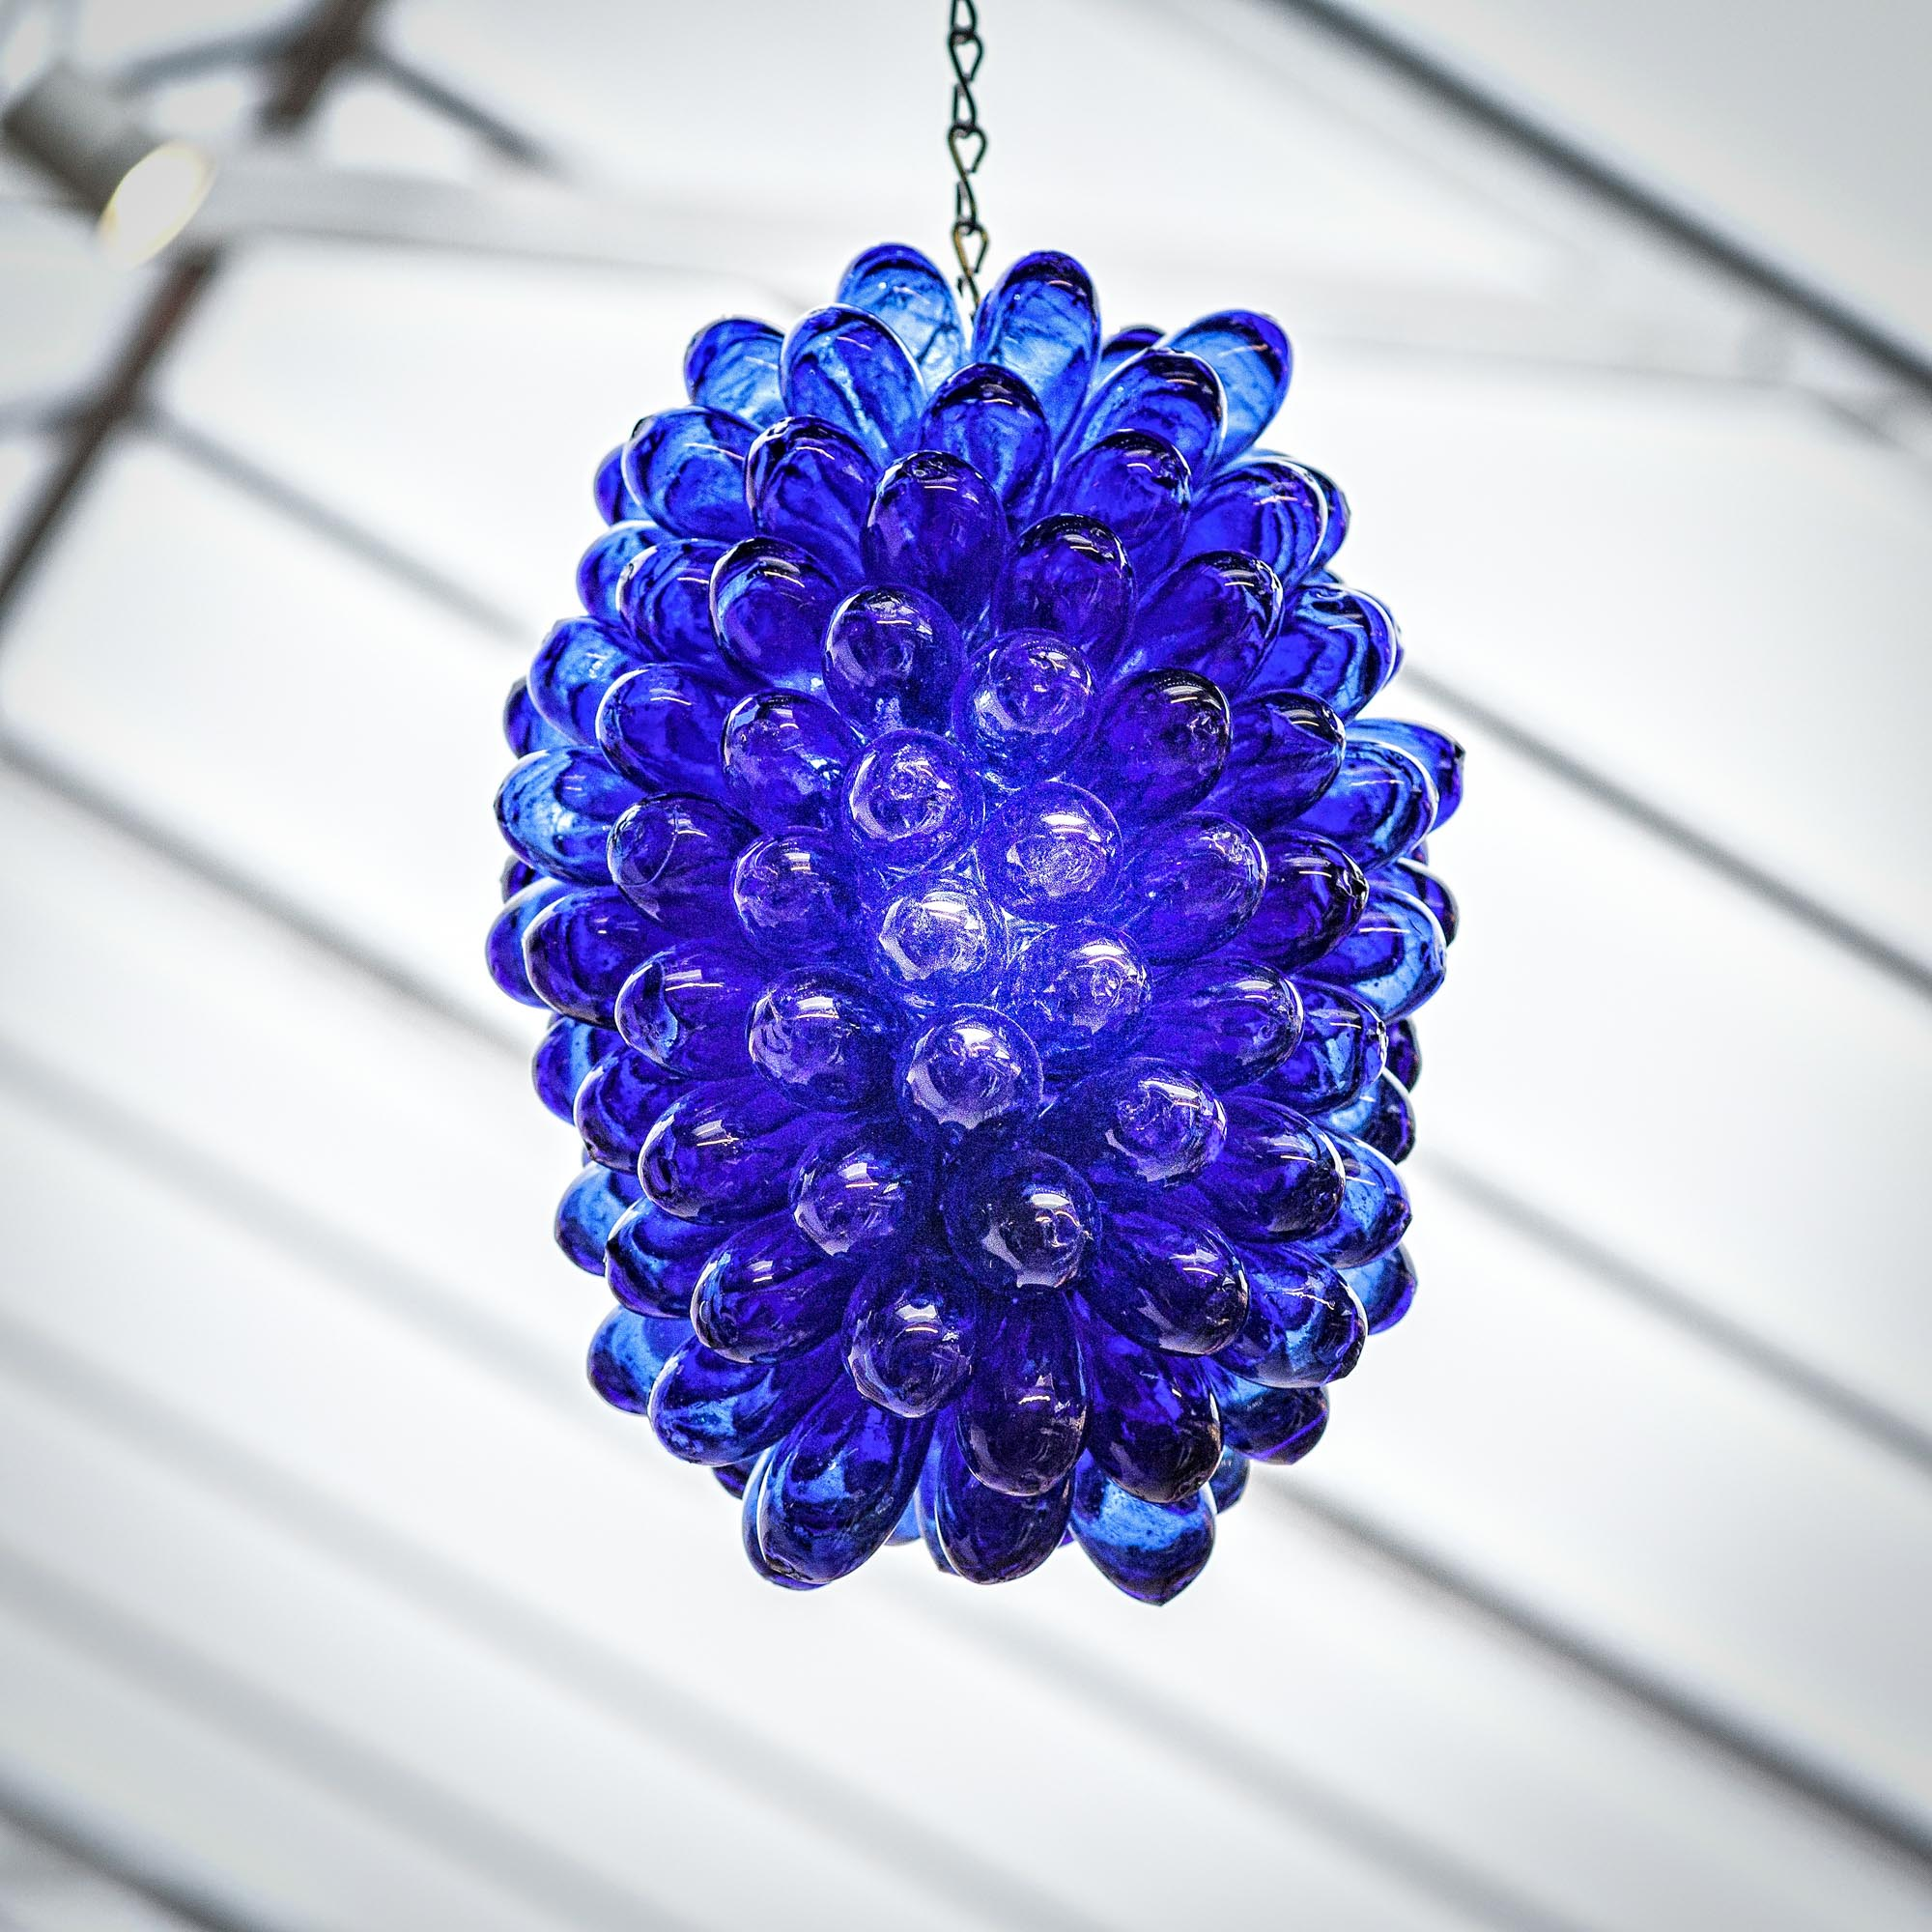 Buy glass grape cluster ceiling lights syrian grappe de verre glass grape cluster ceiling lights in blue mozeypictures Images